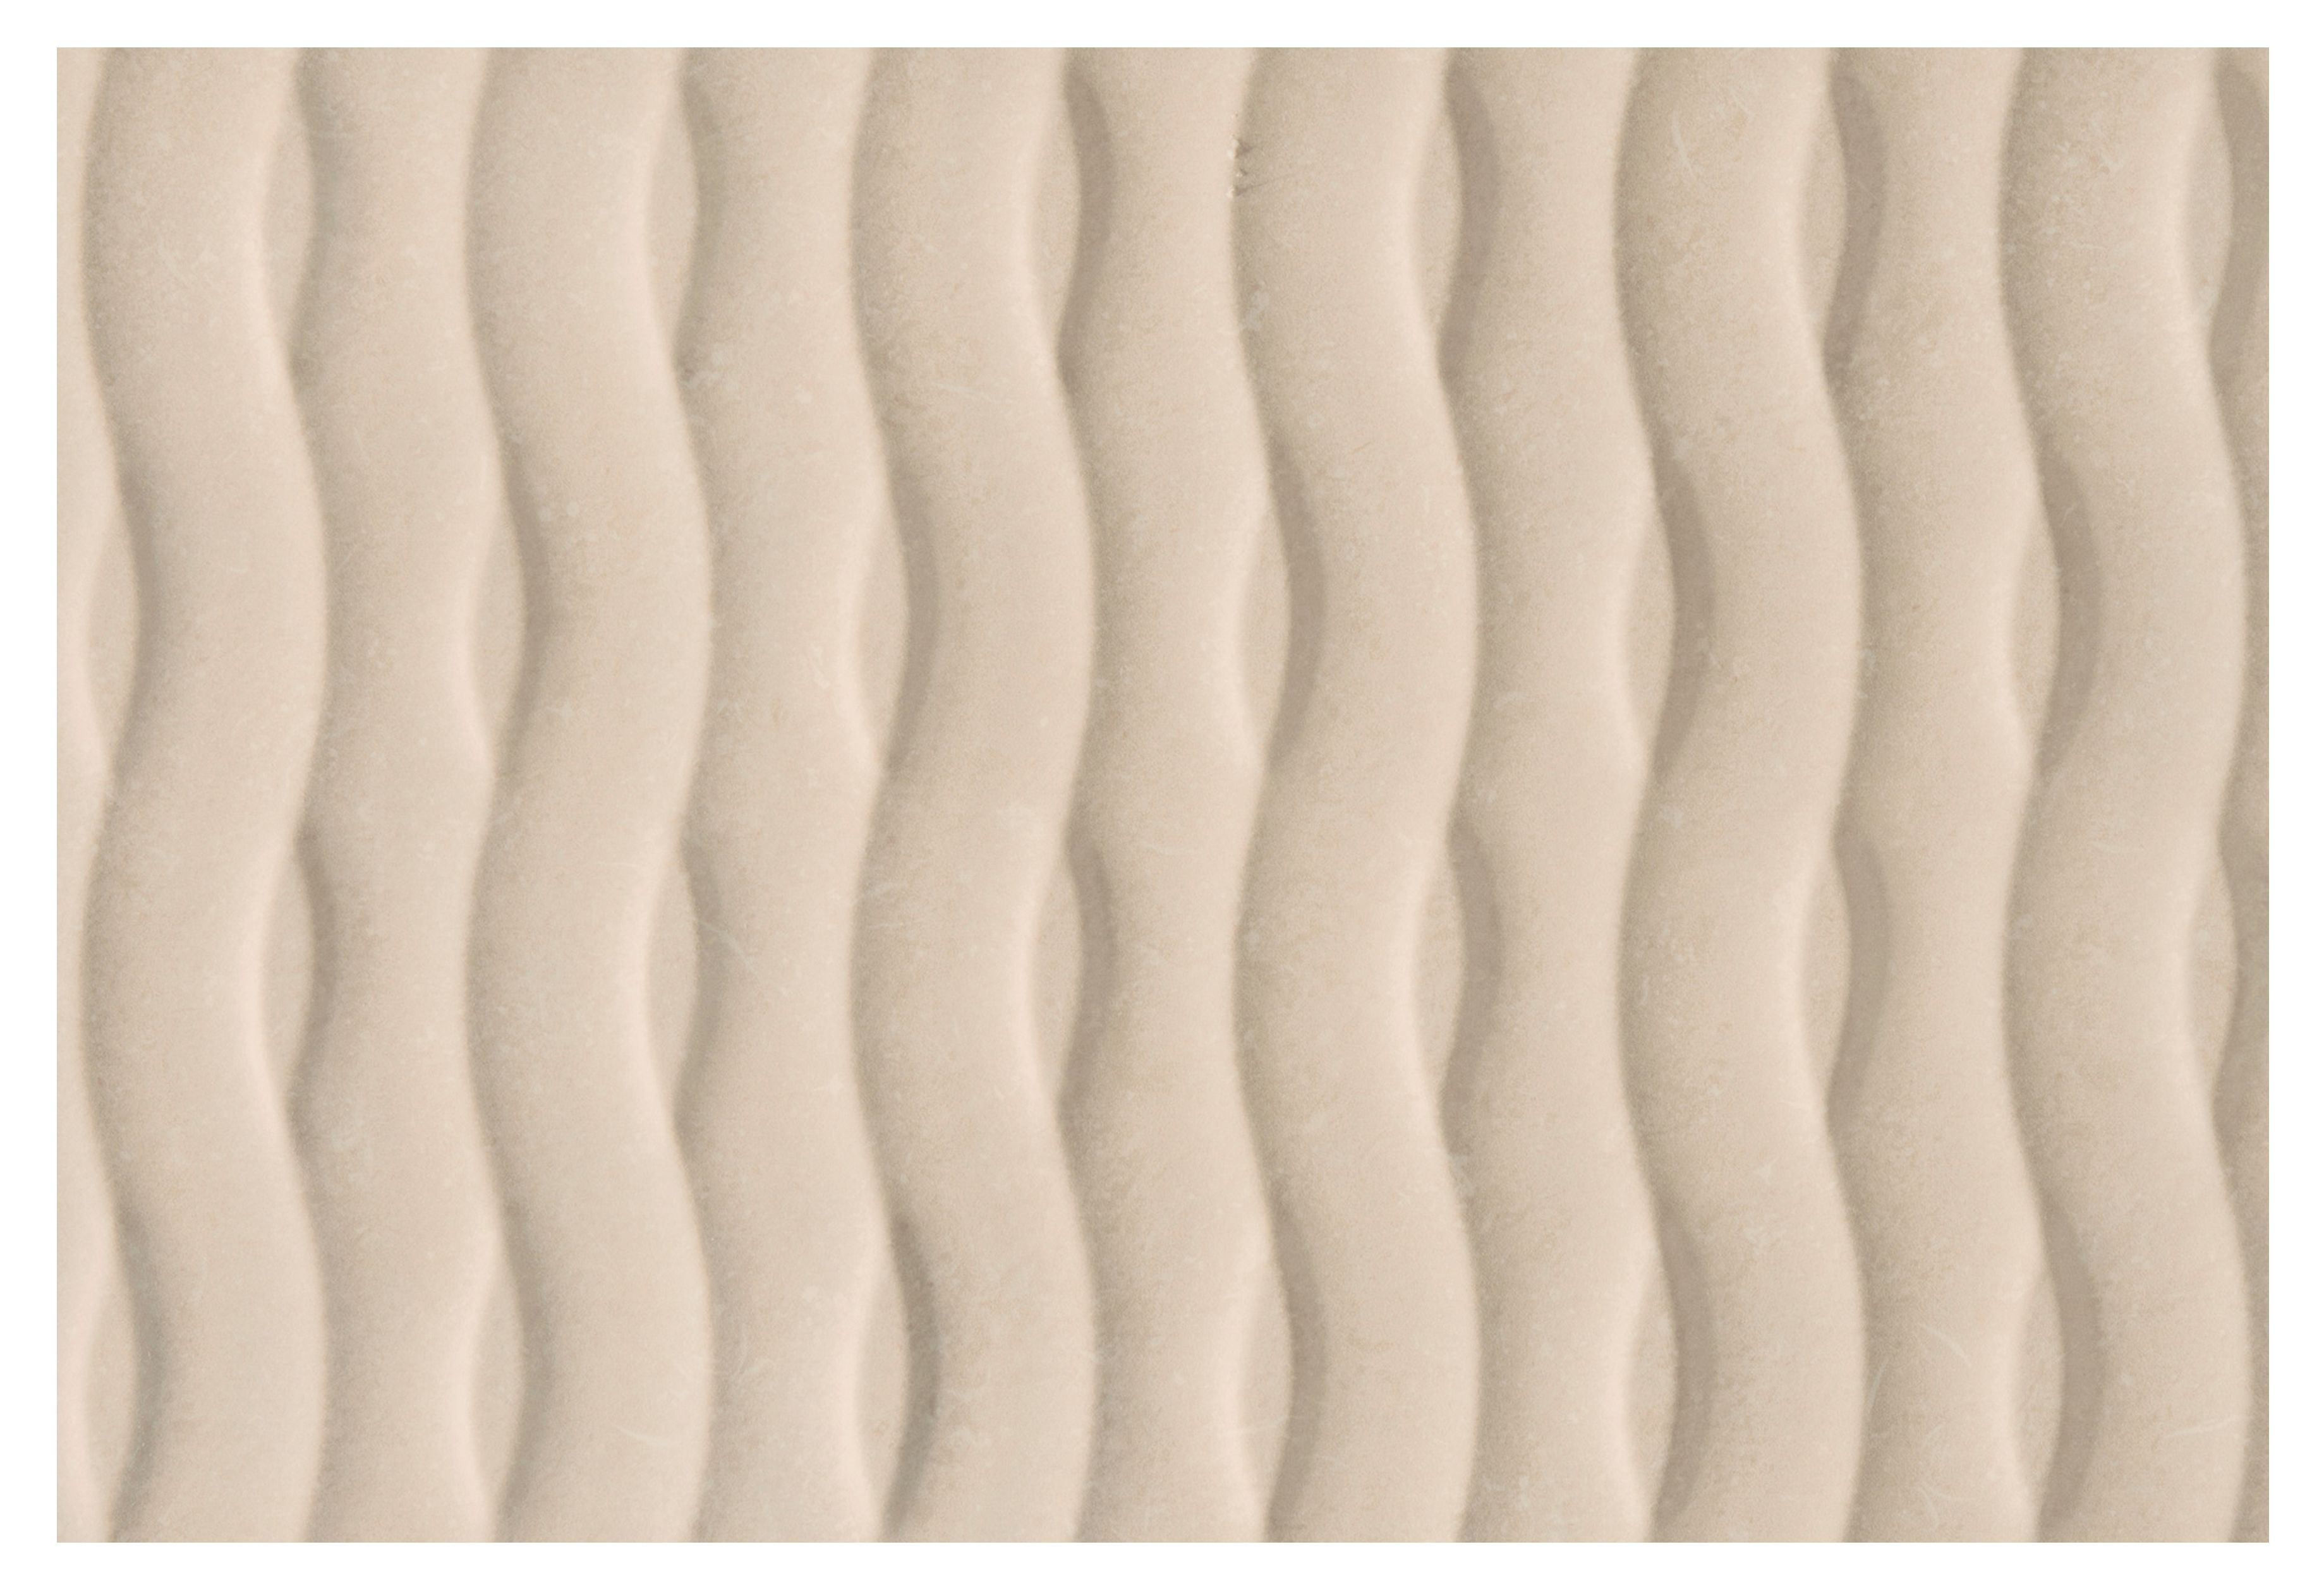 Space Stone Stone Effect Ceramic Wall Tile, Pack Of 7, (l)503mm (w)332mm